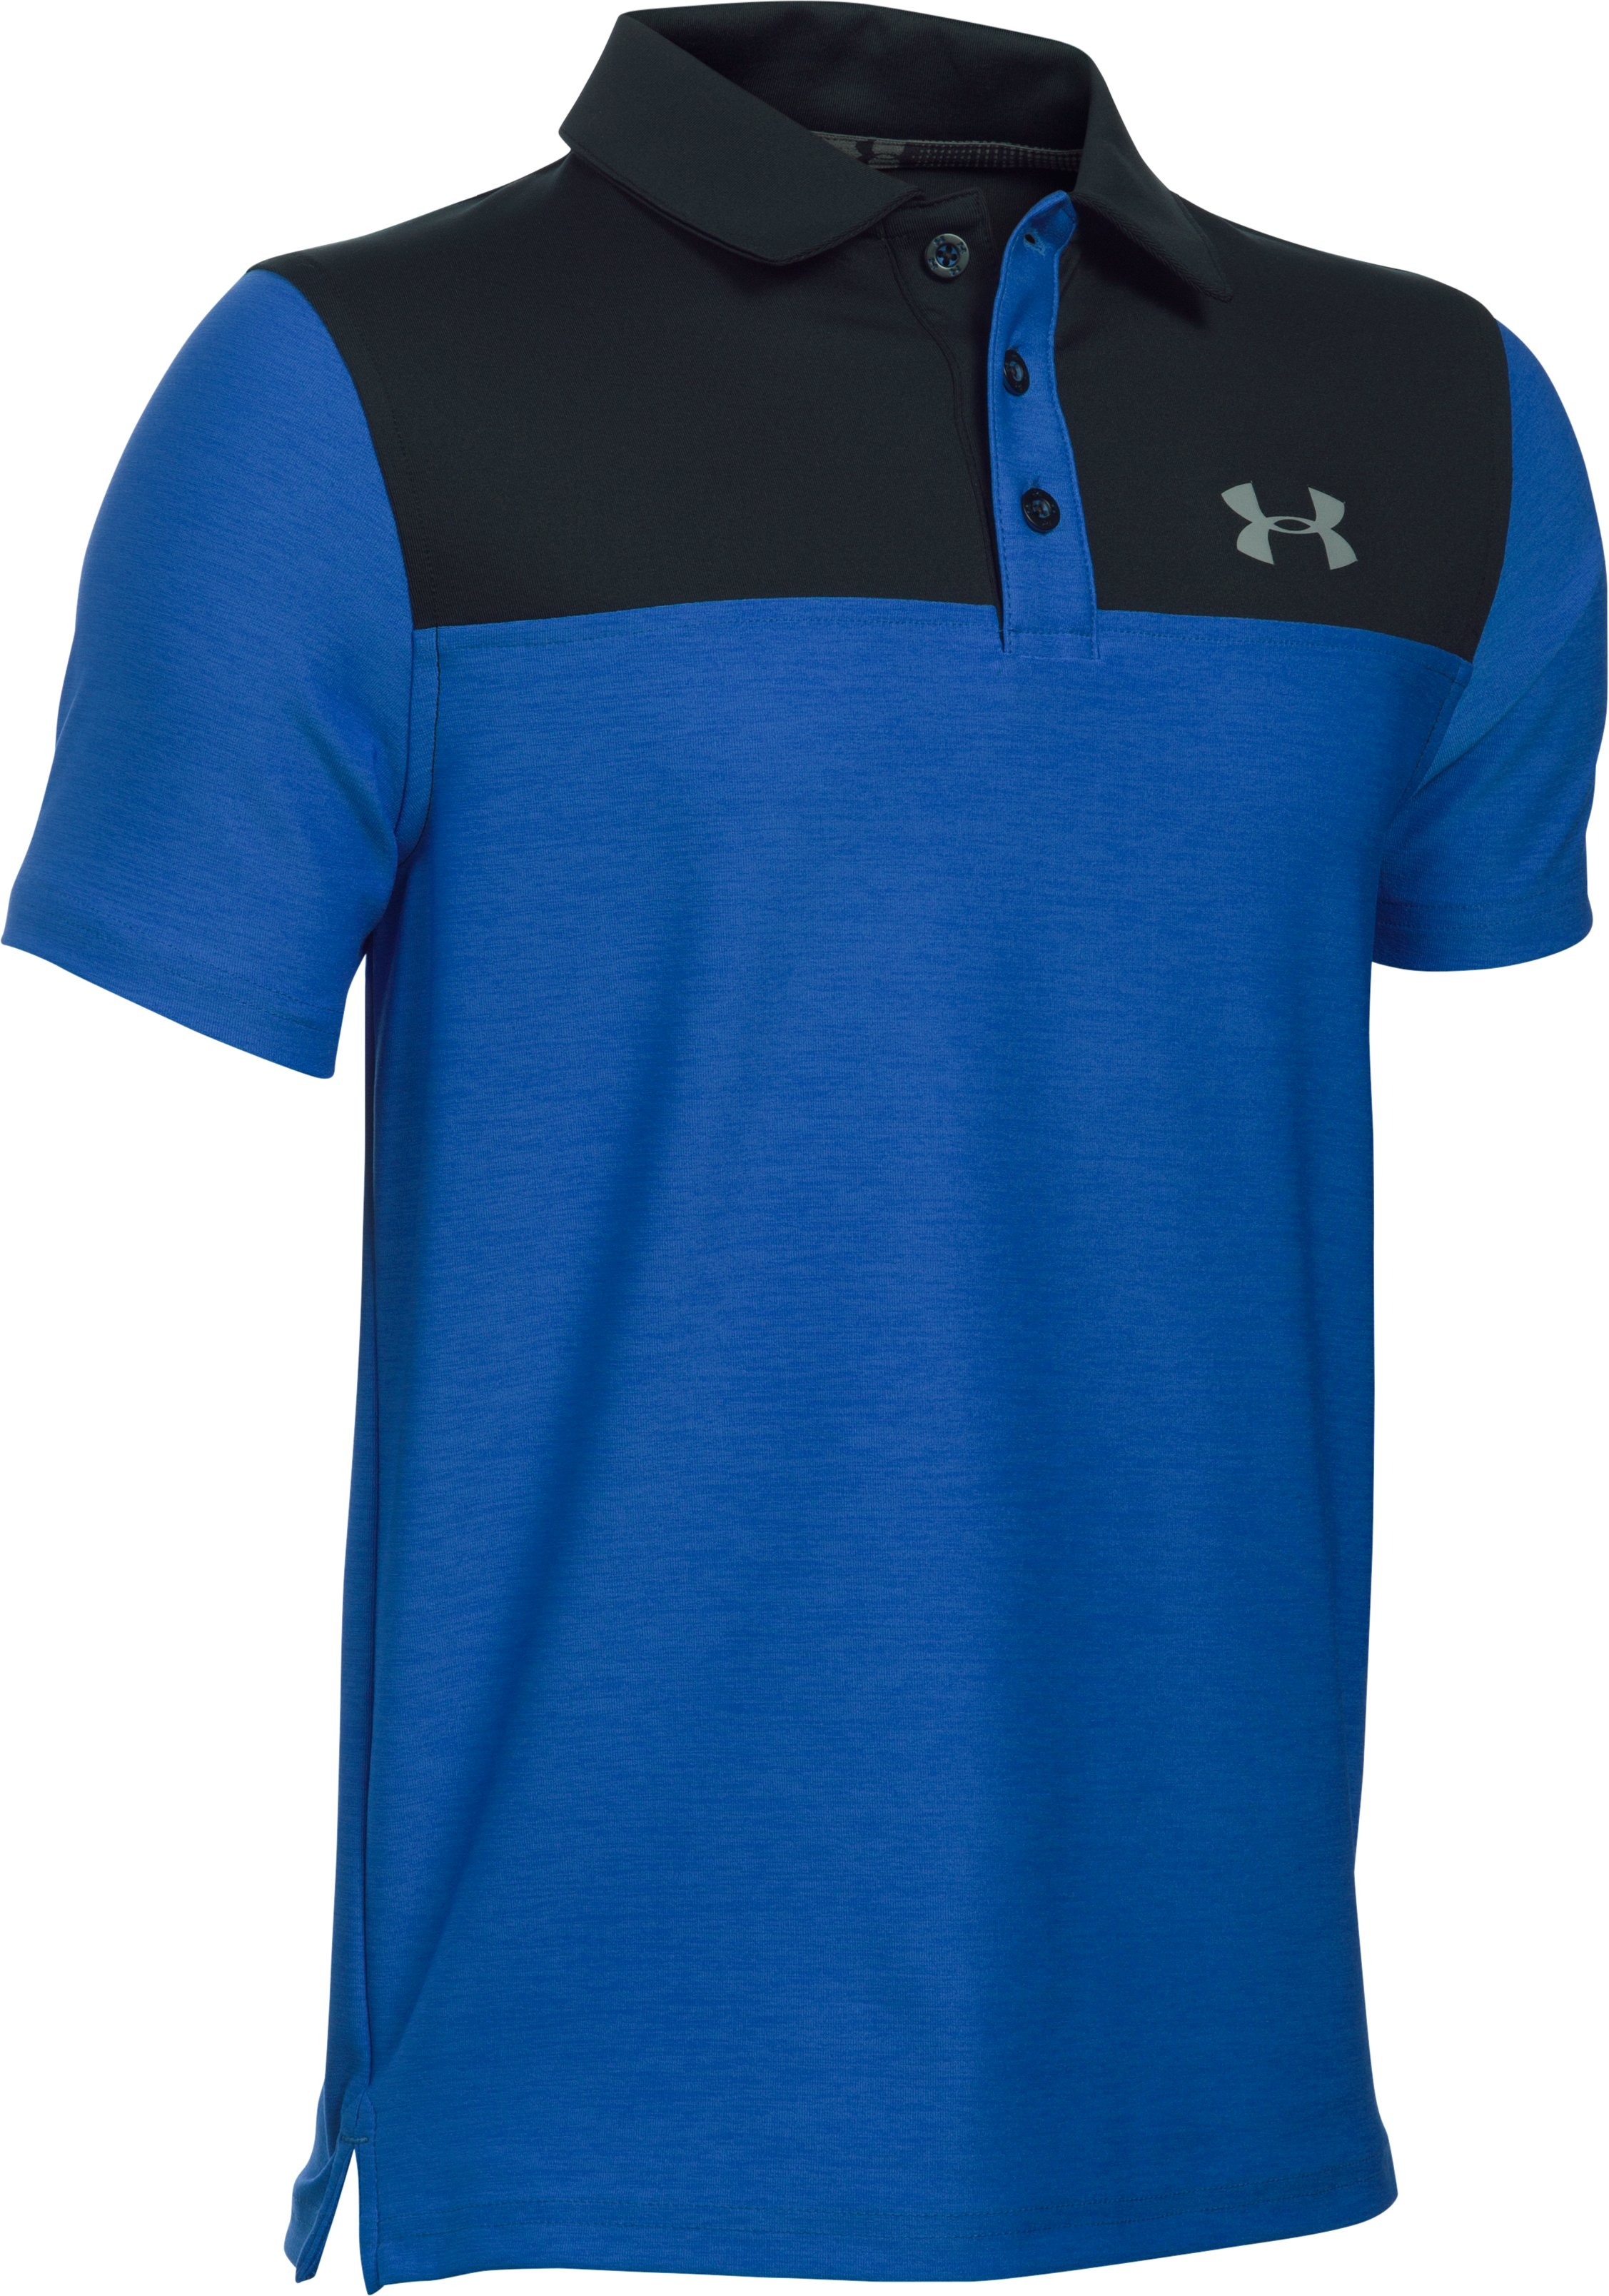 Boys' UA Match Play Blocked Polo , ULTRA BLUE